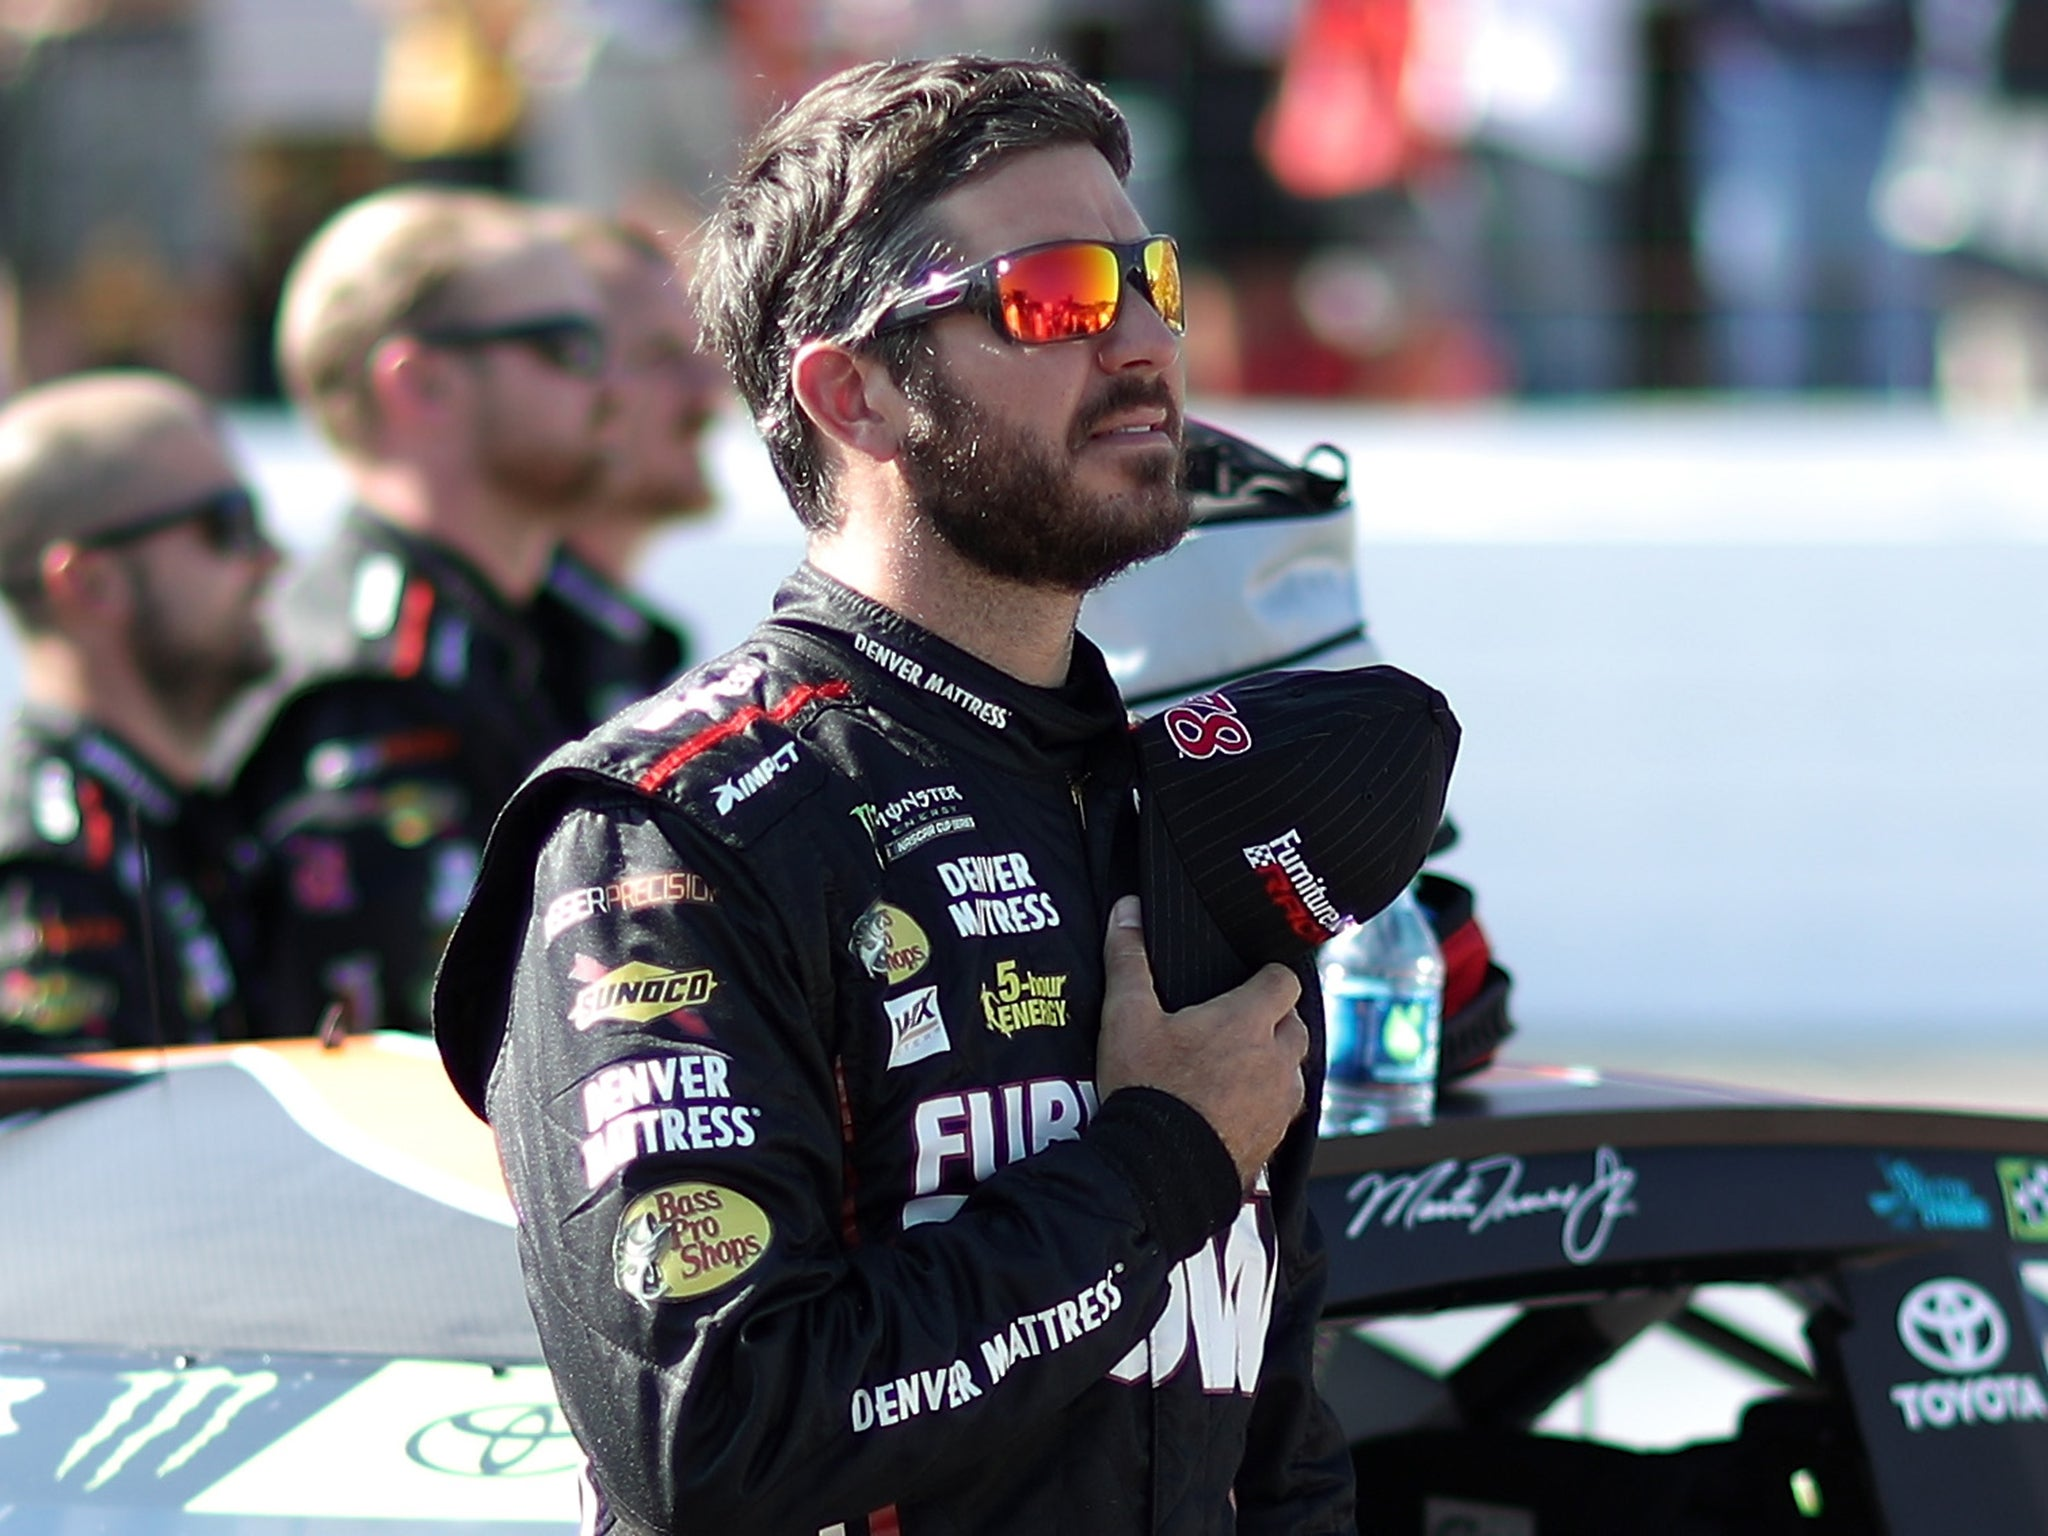 nascar drivers kneel during anthem